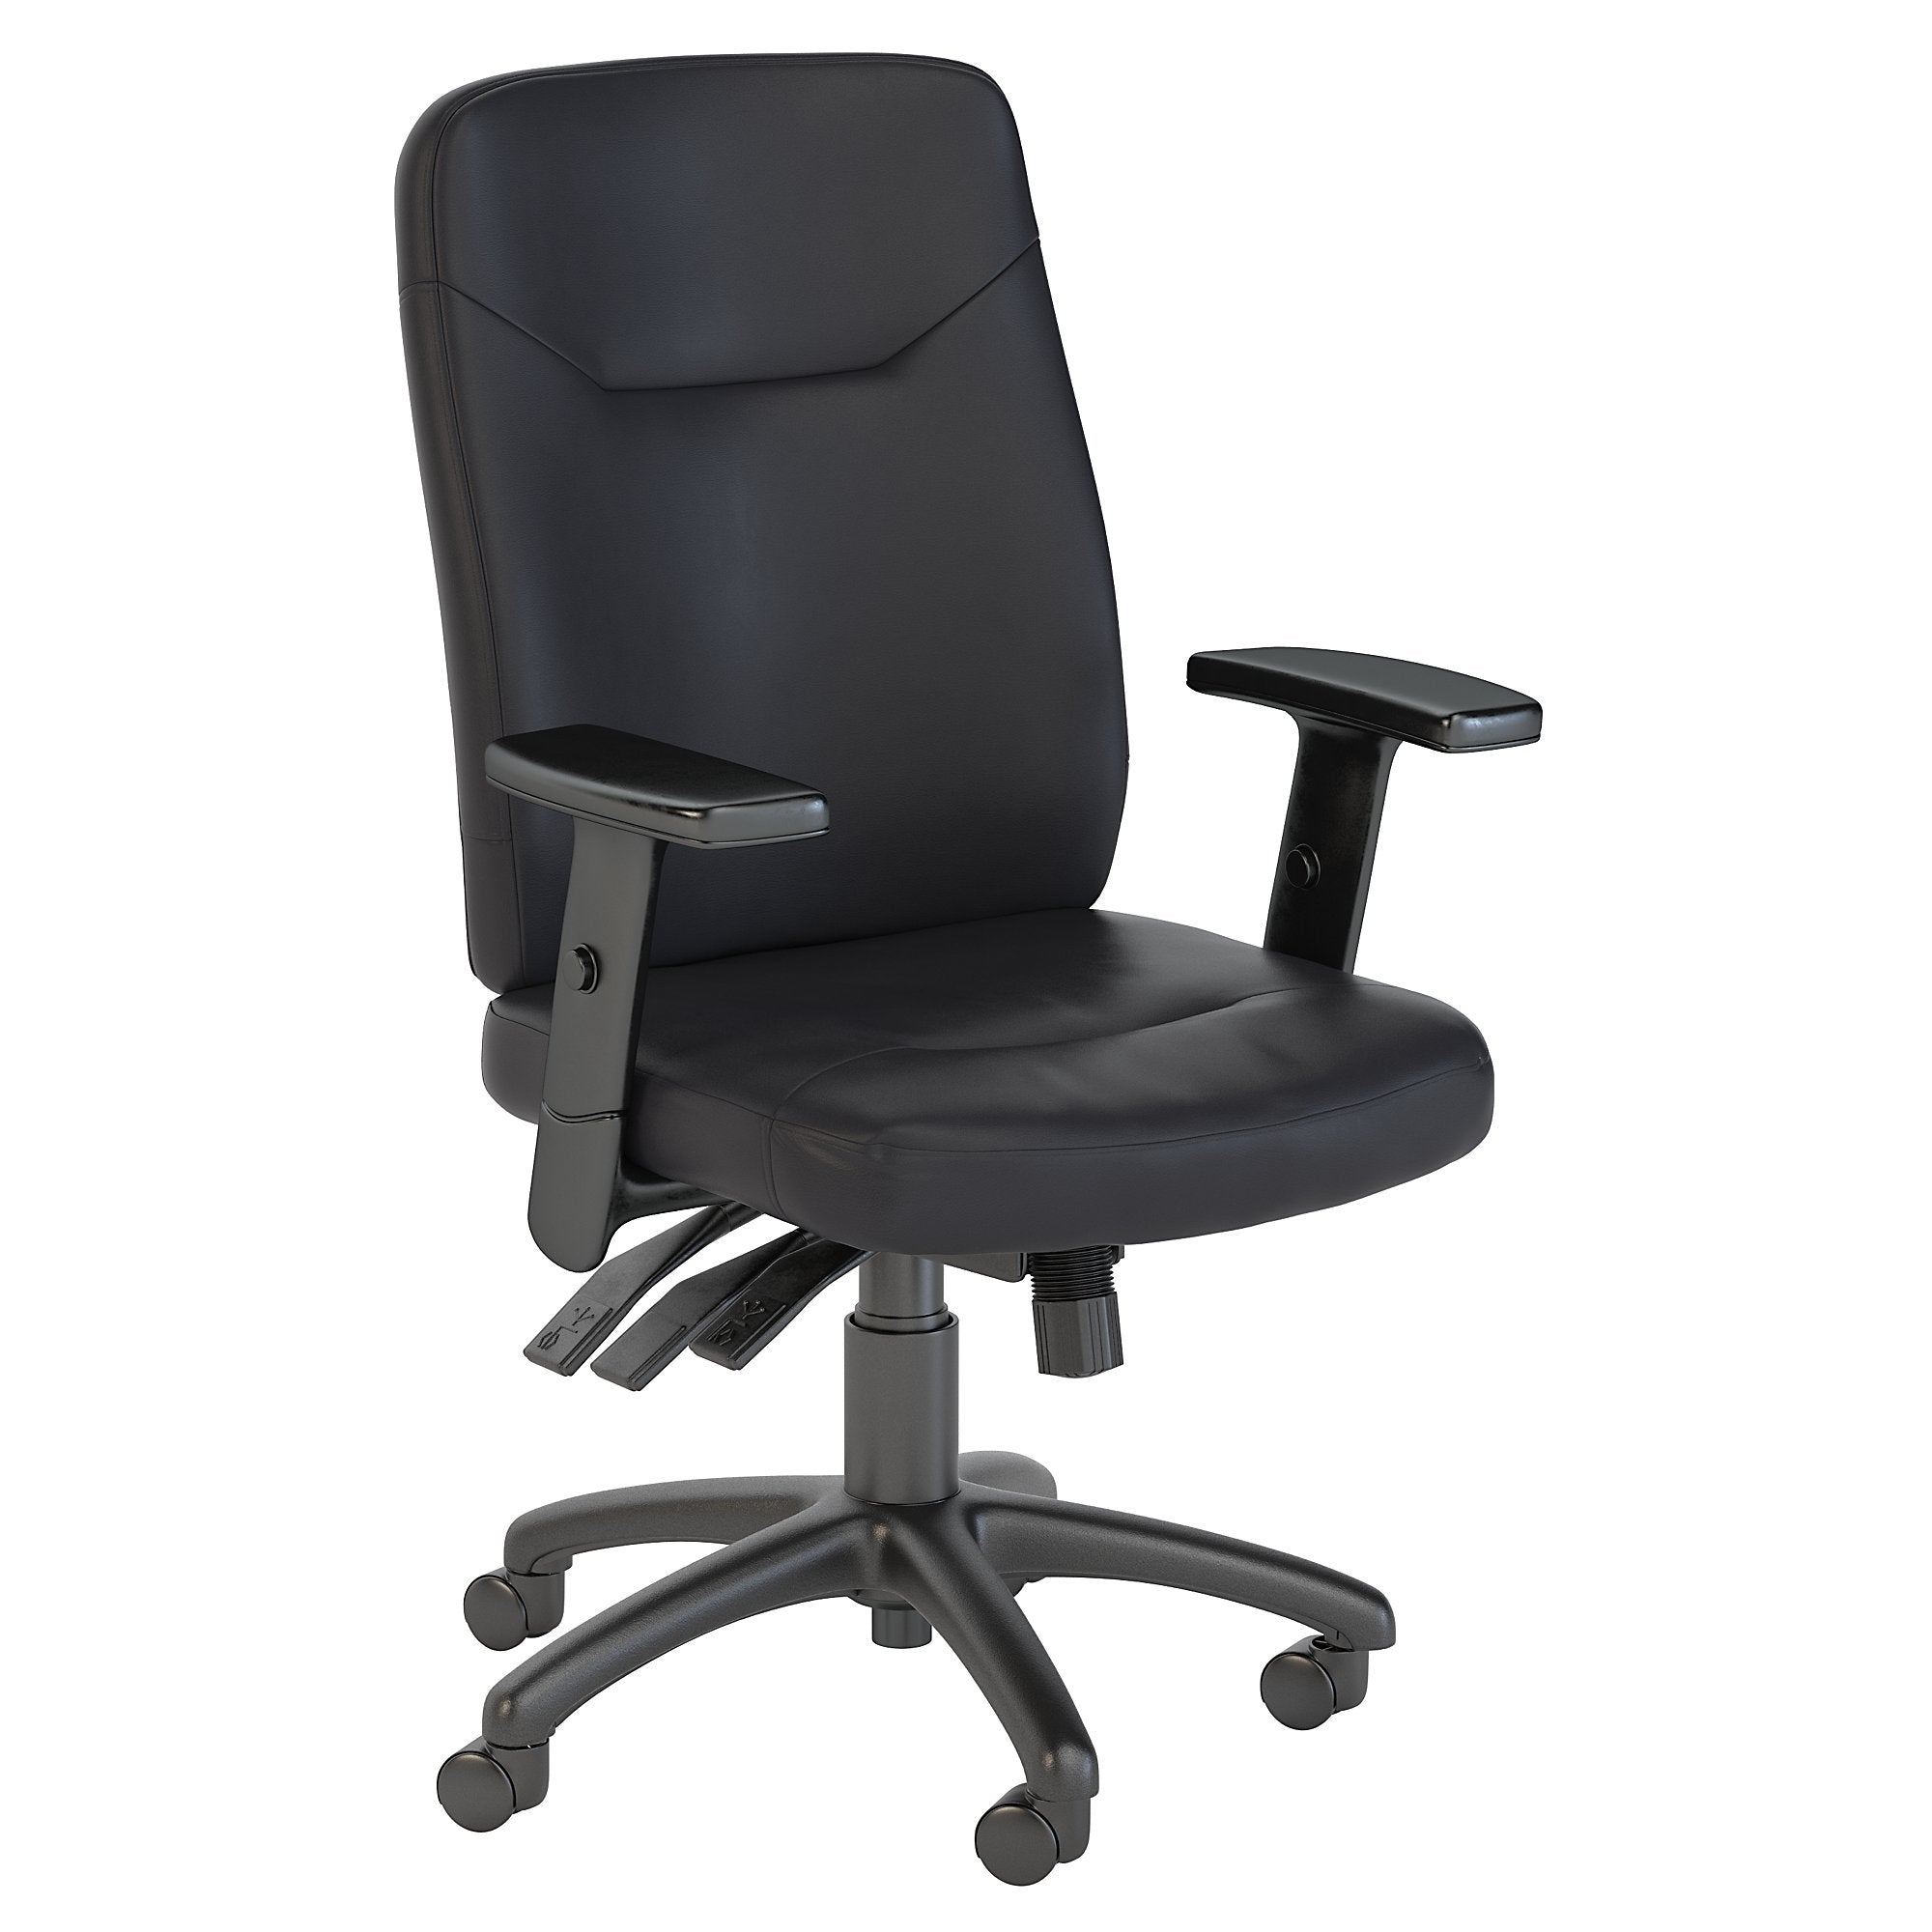 CH1901BLL-03 Bush Business Furniture Stanton High Back Multifunction Black Leather Executive Office Chair